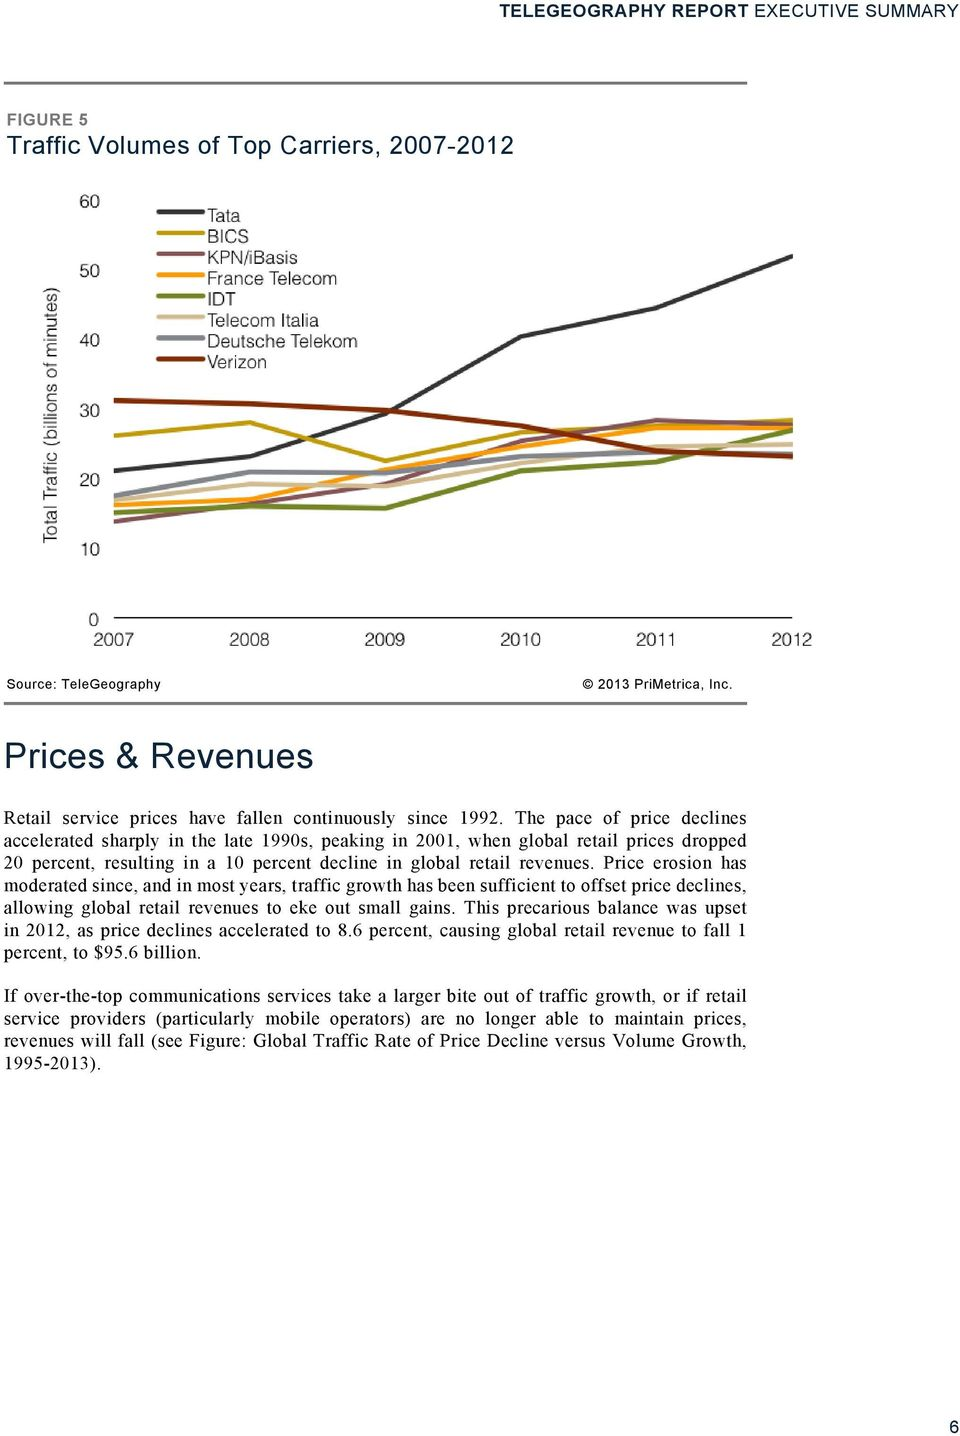 Price erosion has moderated since, and in most years, traffic growth has been sufficient to offset price declines, allowing global retail revenues to eke out small gains.